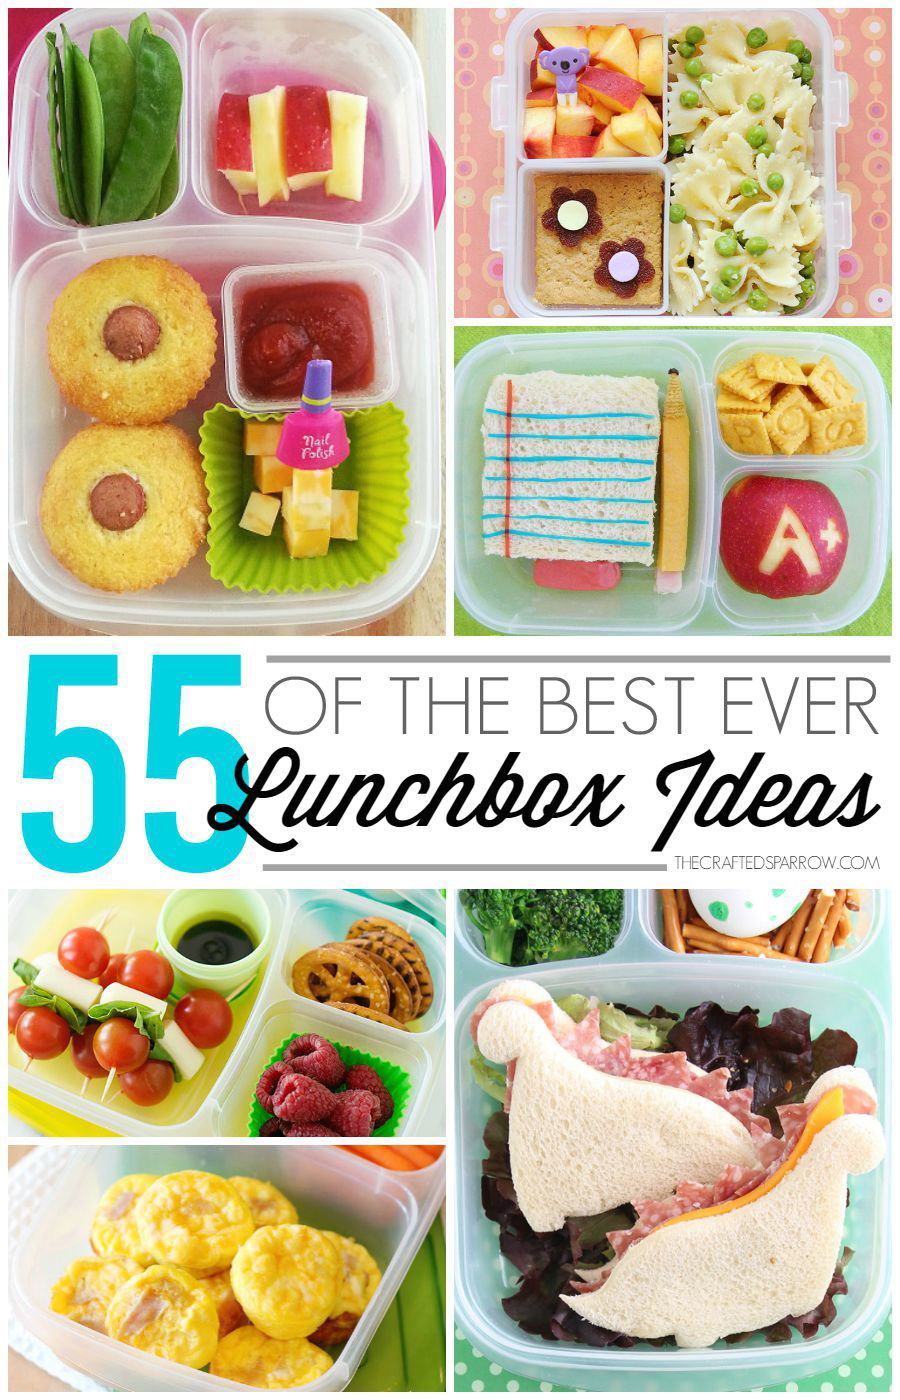 55 Best Ever Lunchbox Ideas